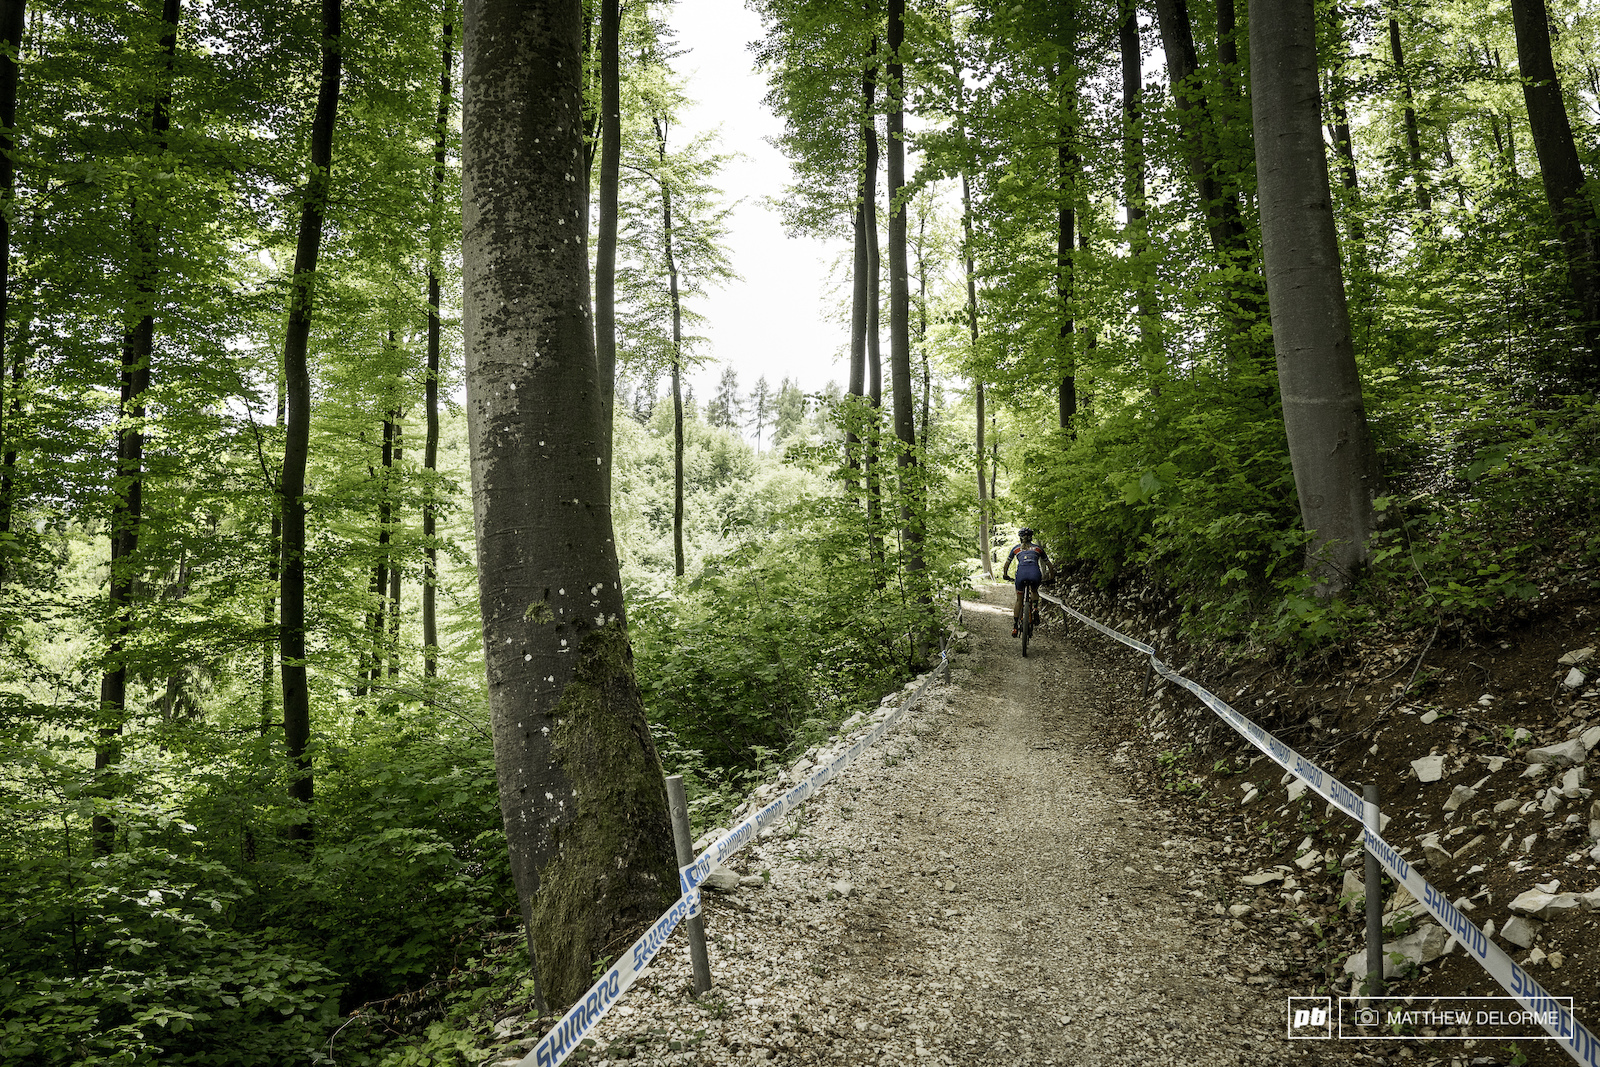 Nove Mesto has several shorter rough climbs. Albstadt has two long grinding climbs.